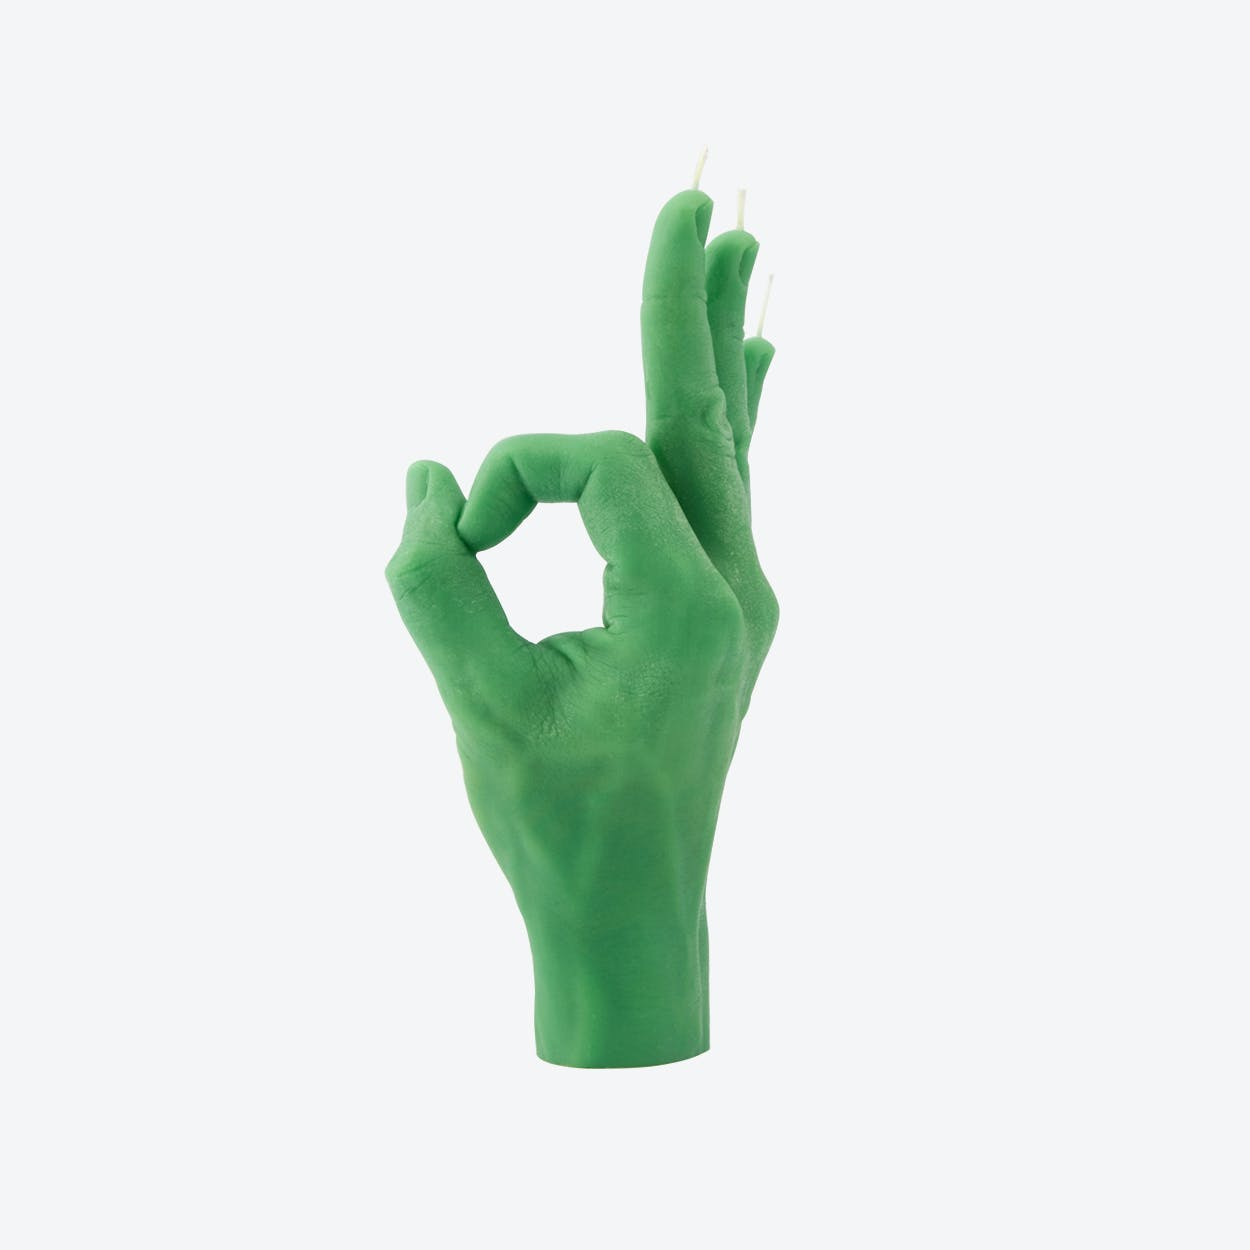 """OK"" Hand Gesture Candle in Green"